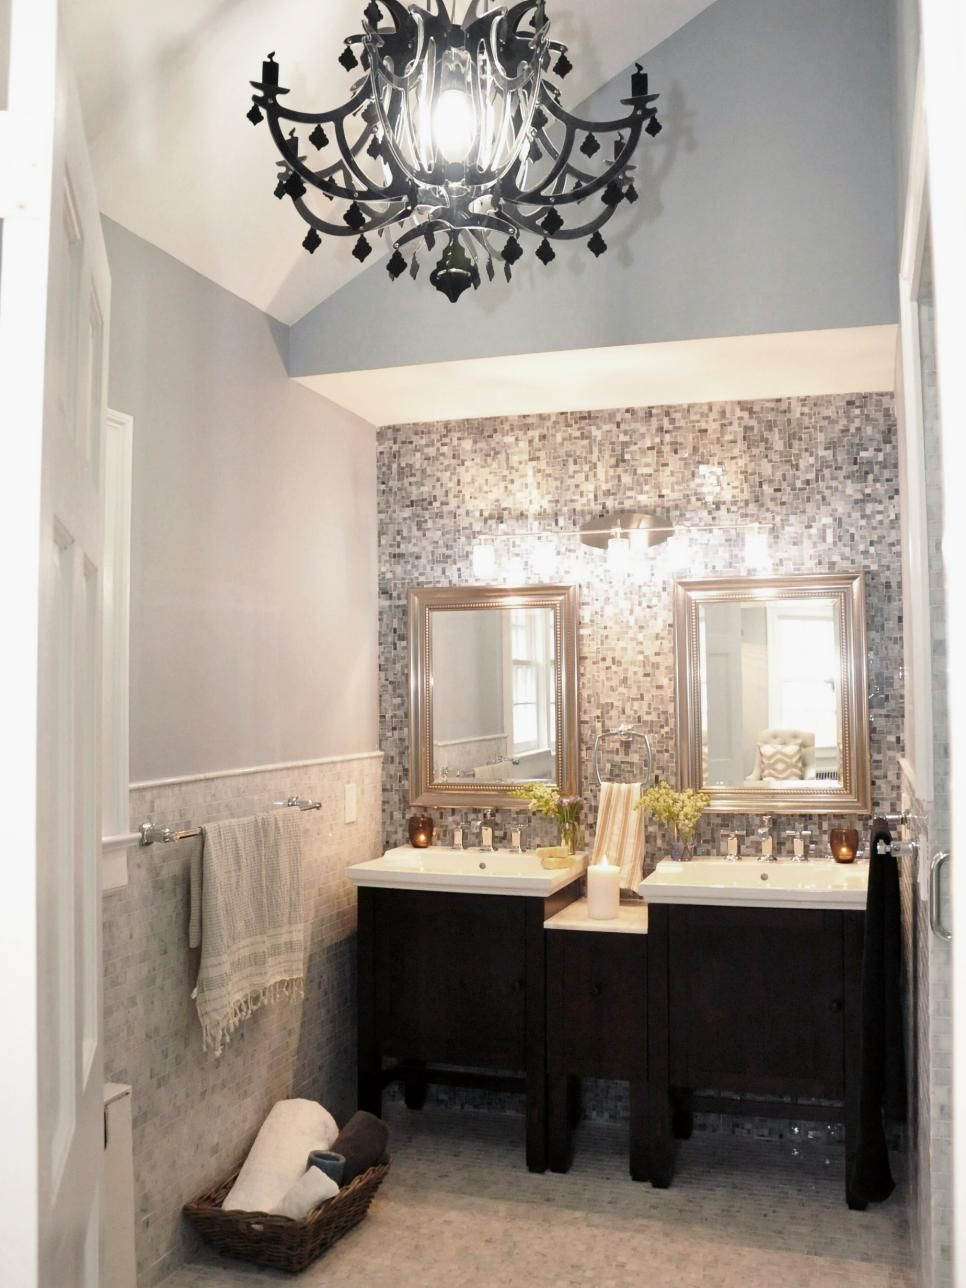 The Signature Elements In This New Master Bathroom Include Light